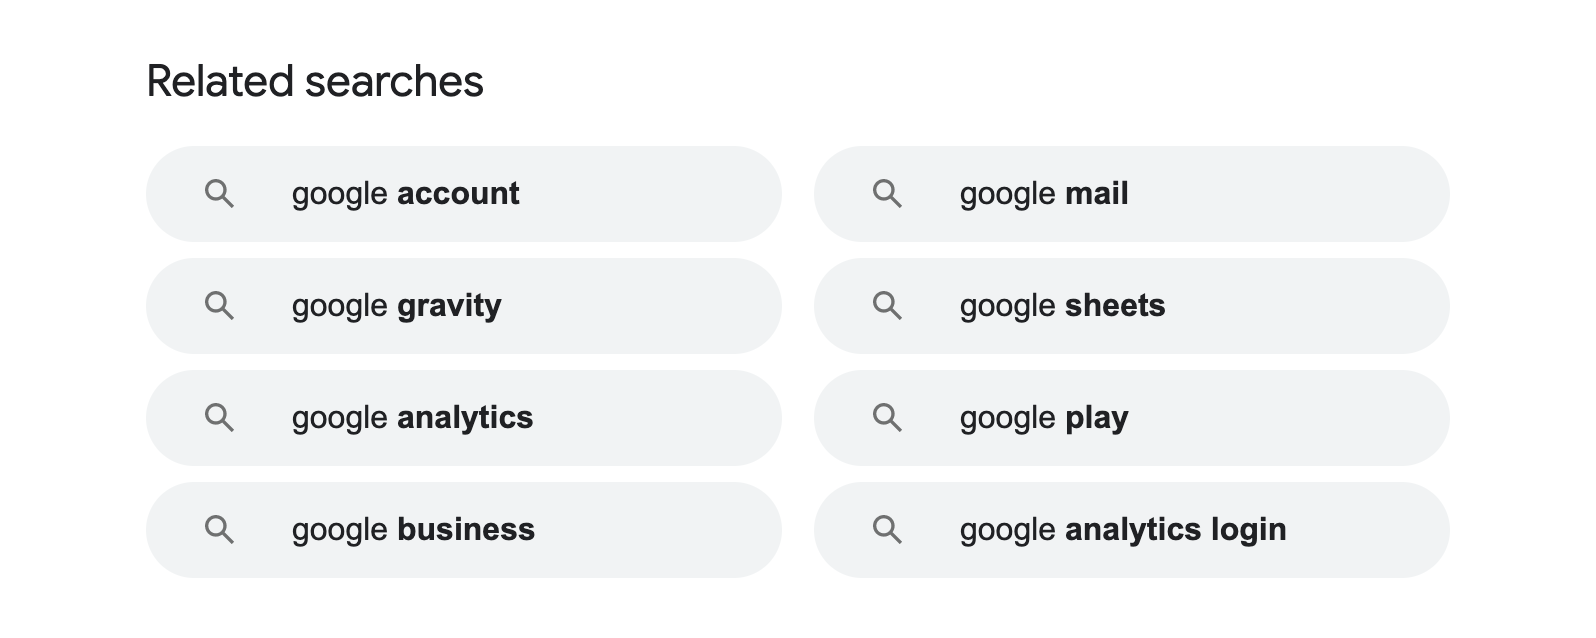 example of google related searches